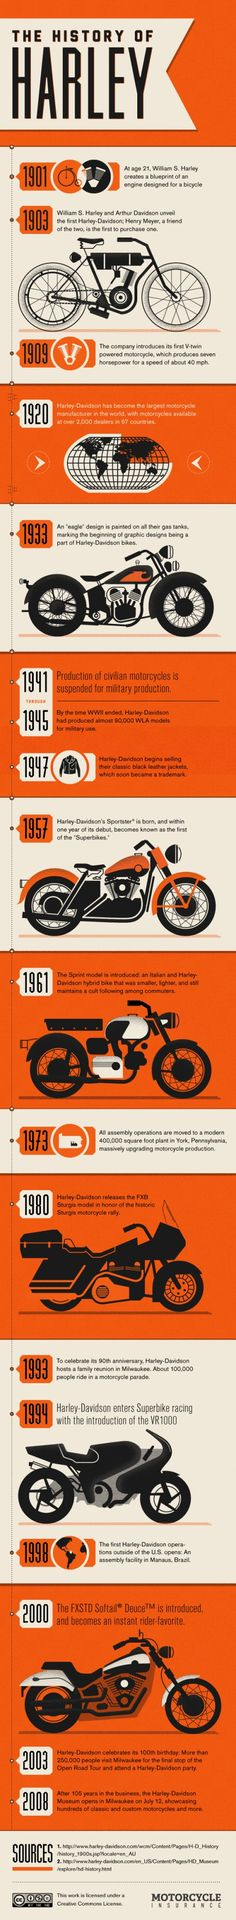 History of Harley: